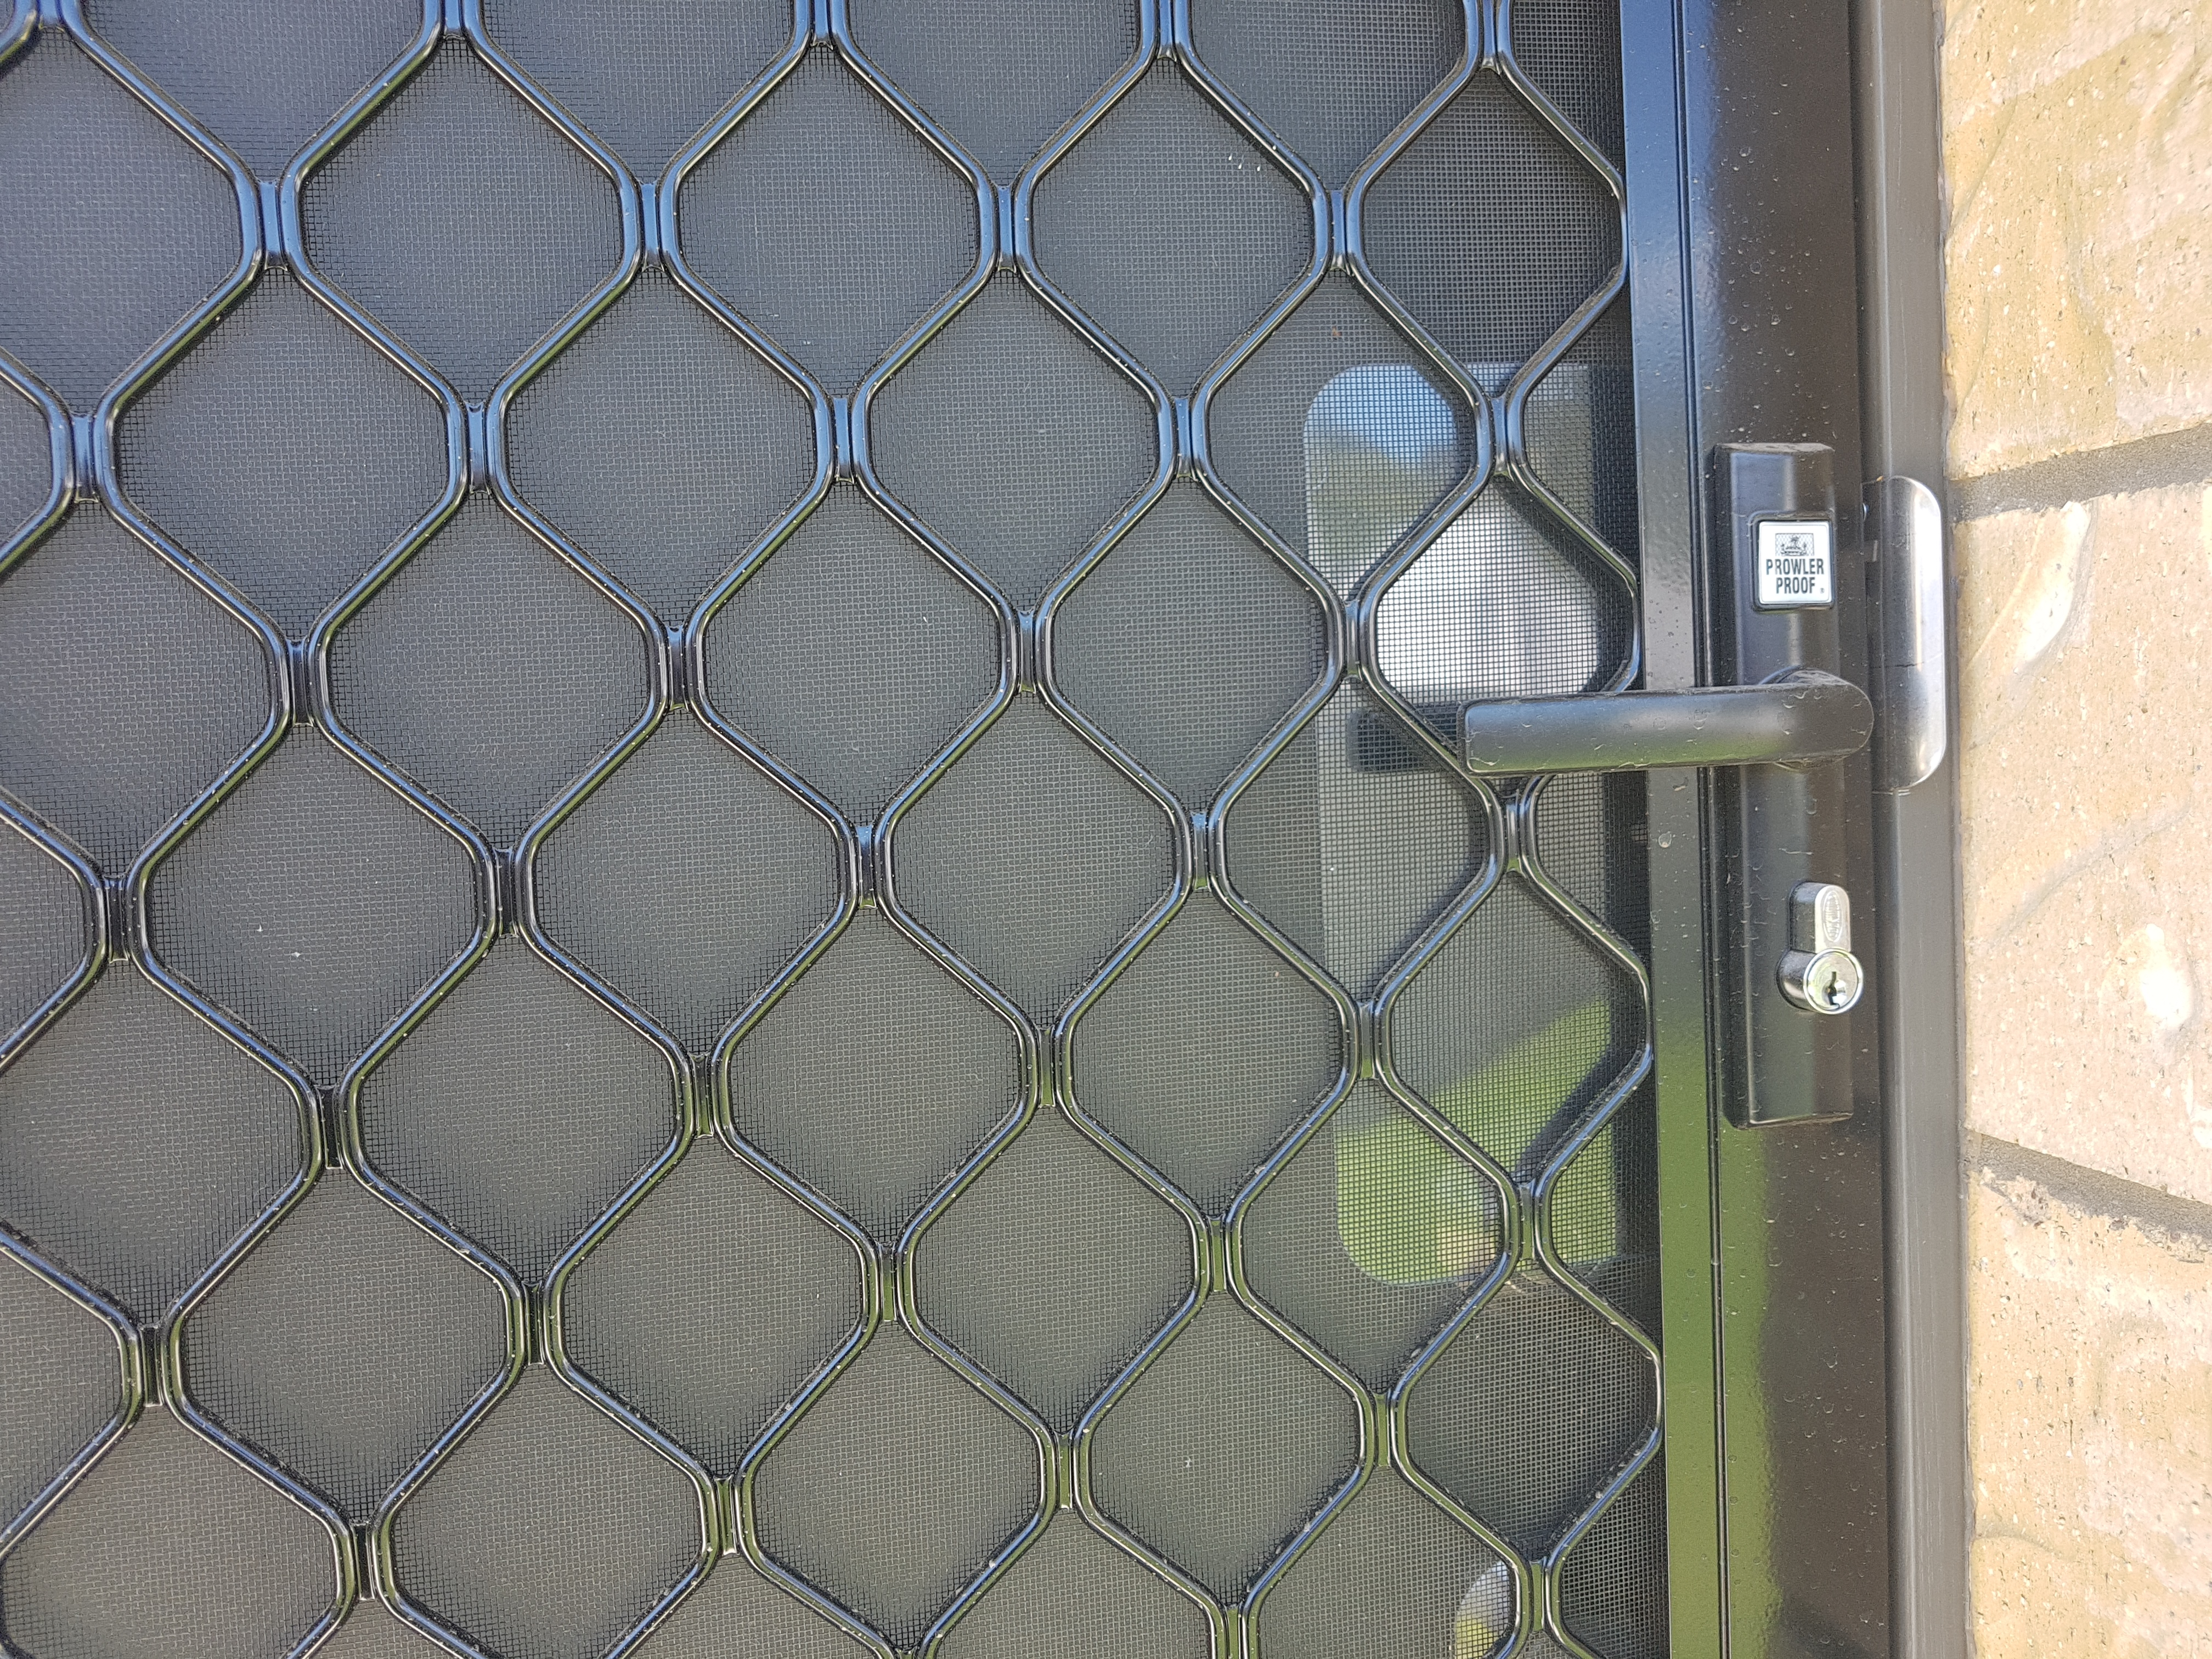 All diamond grille security doors come standard with a keyguard